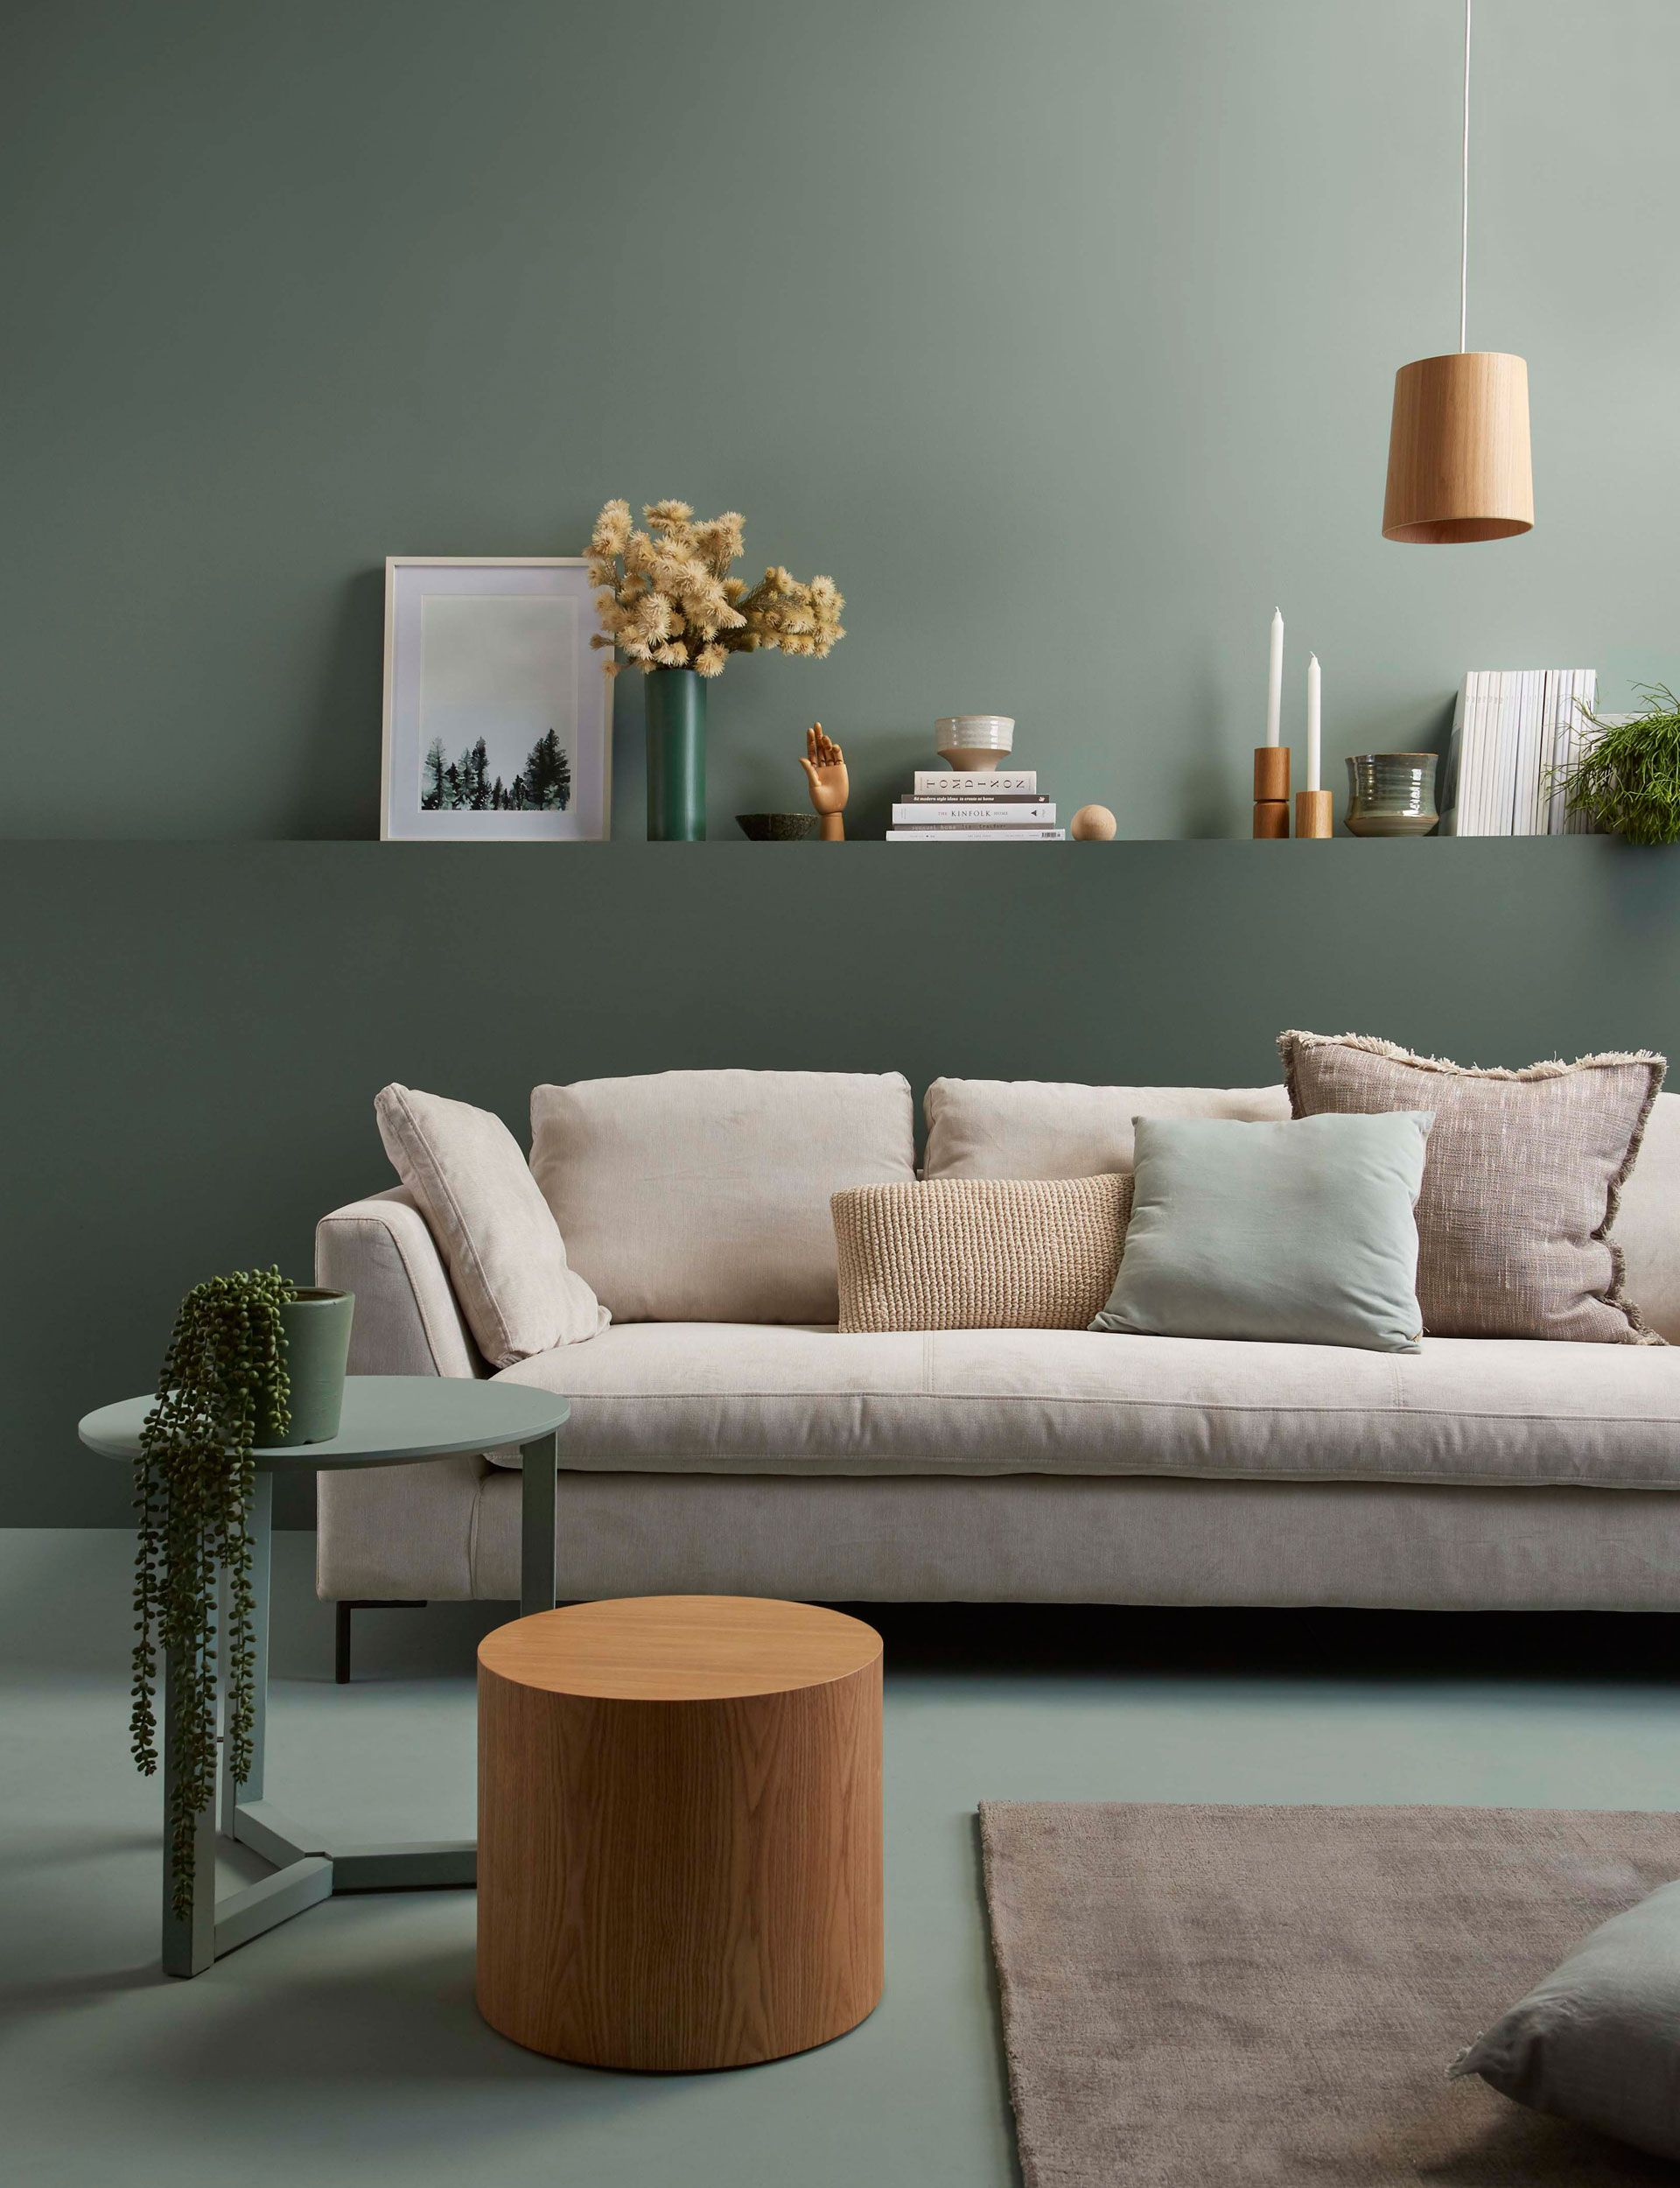 Choosing A Living Room Decor Theme: How To Choose A Colour Palette For Your Interior Like A